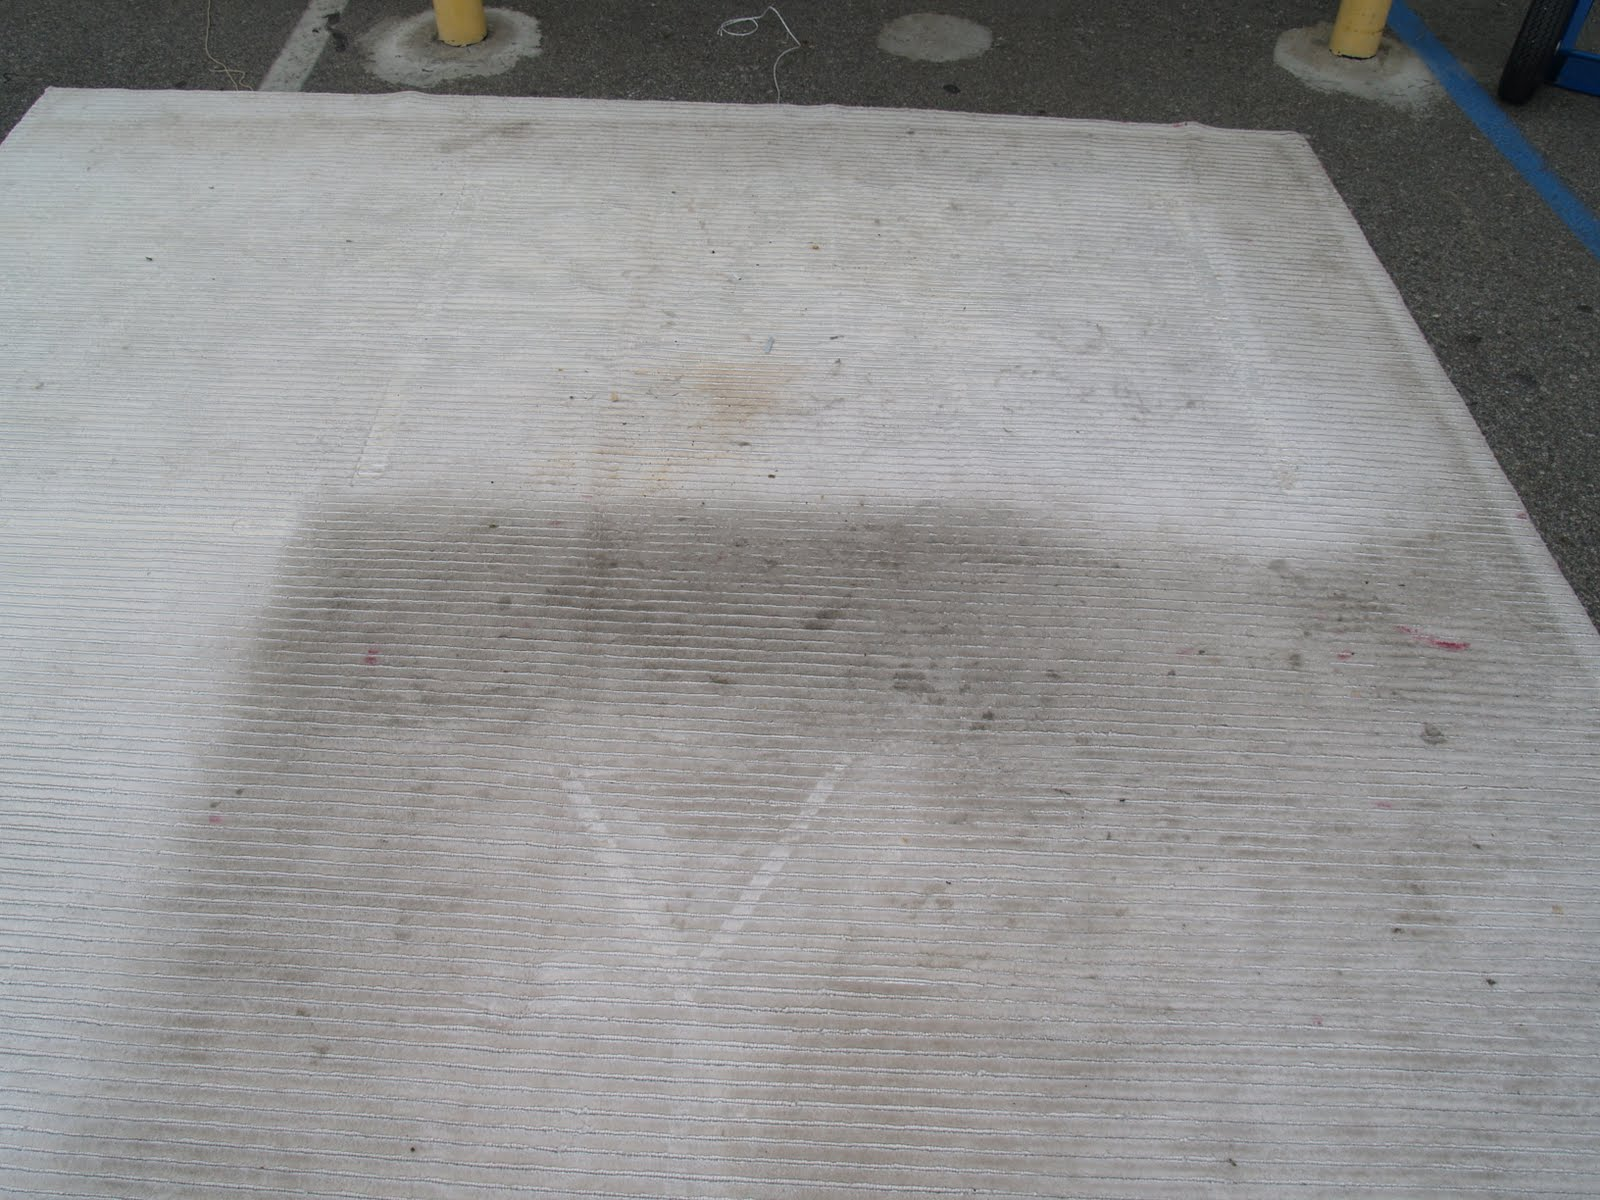 Silk Shag Rug Cleaning u0026 Stain Removal